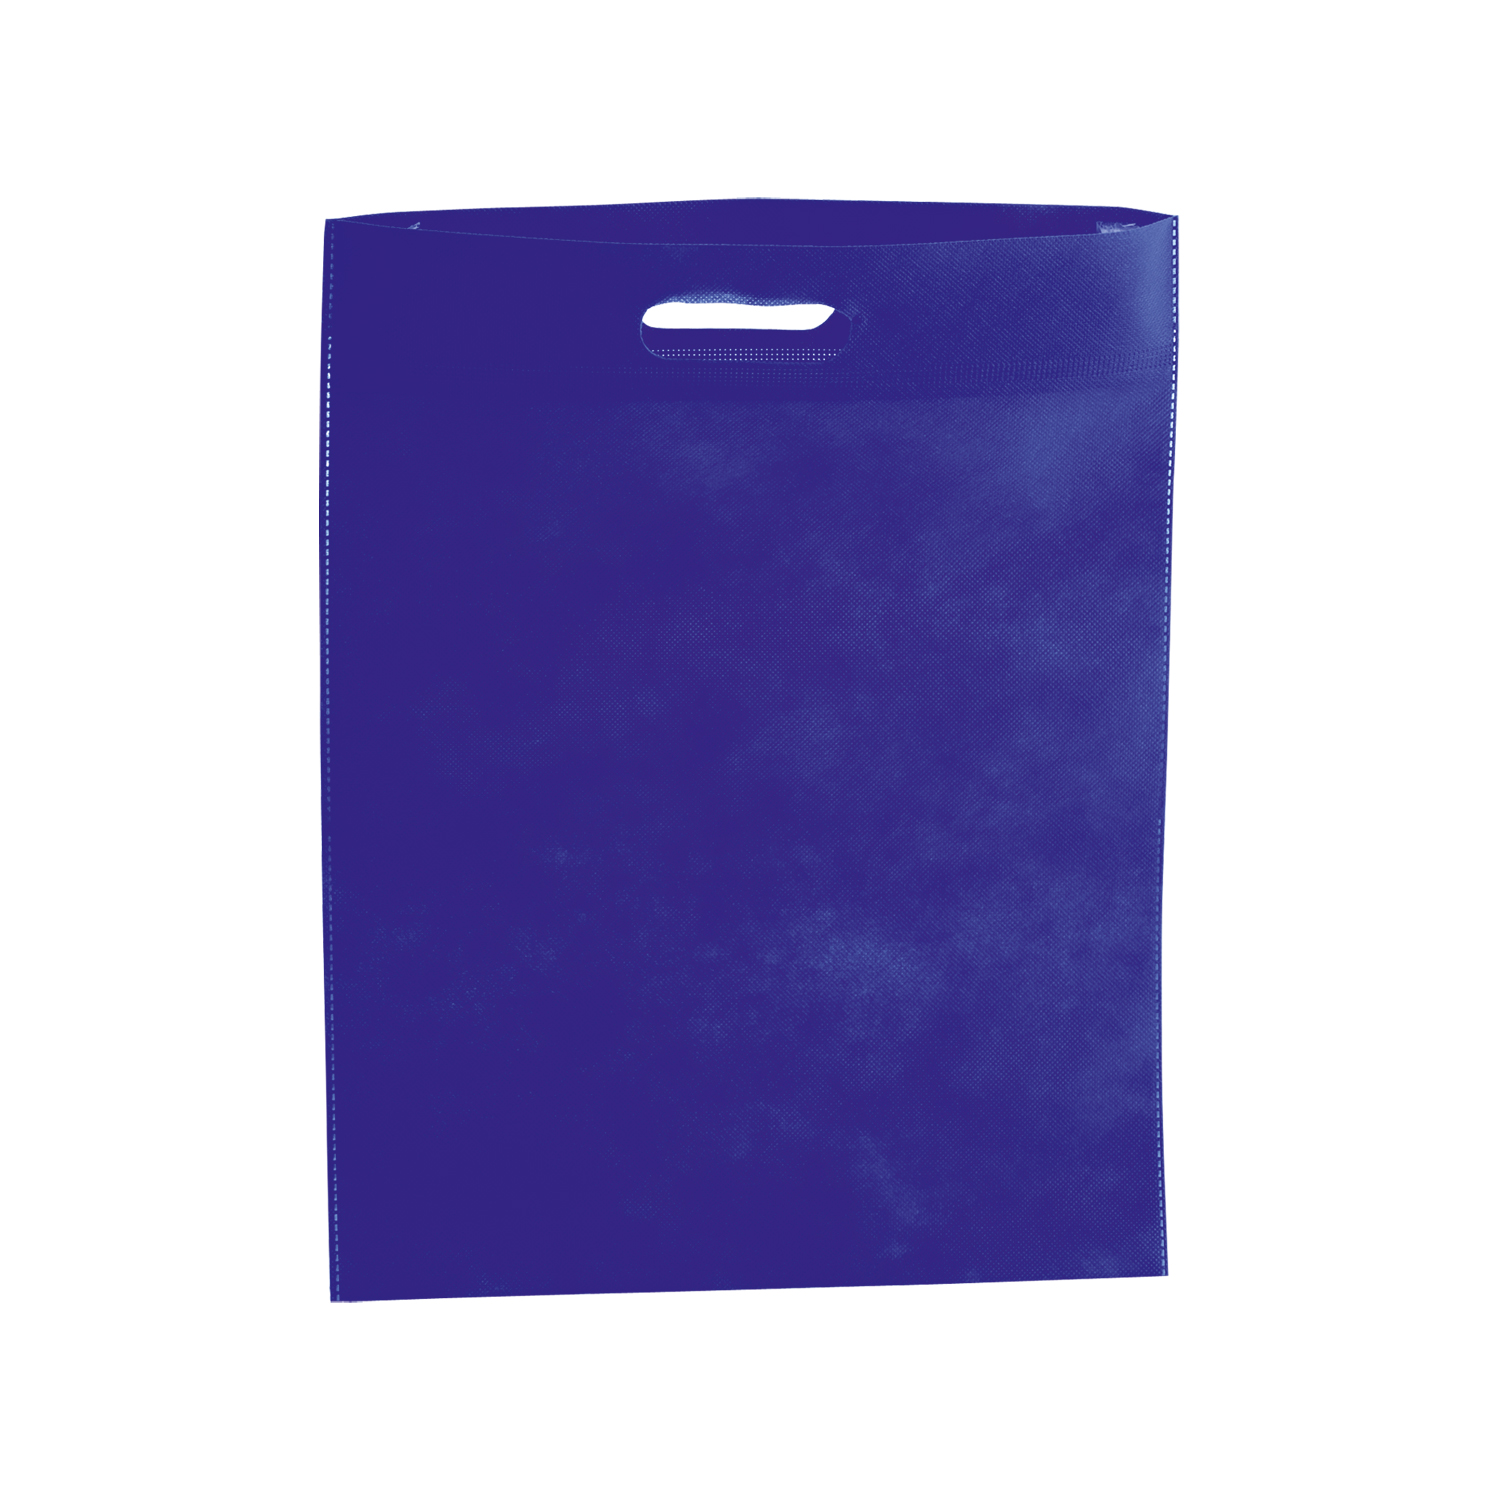 Shopping Bag 022 (Non-woven shopping bag) - hmi17022-07 (Blue)